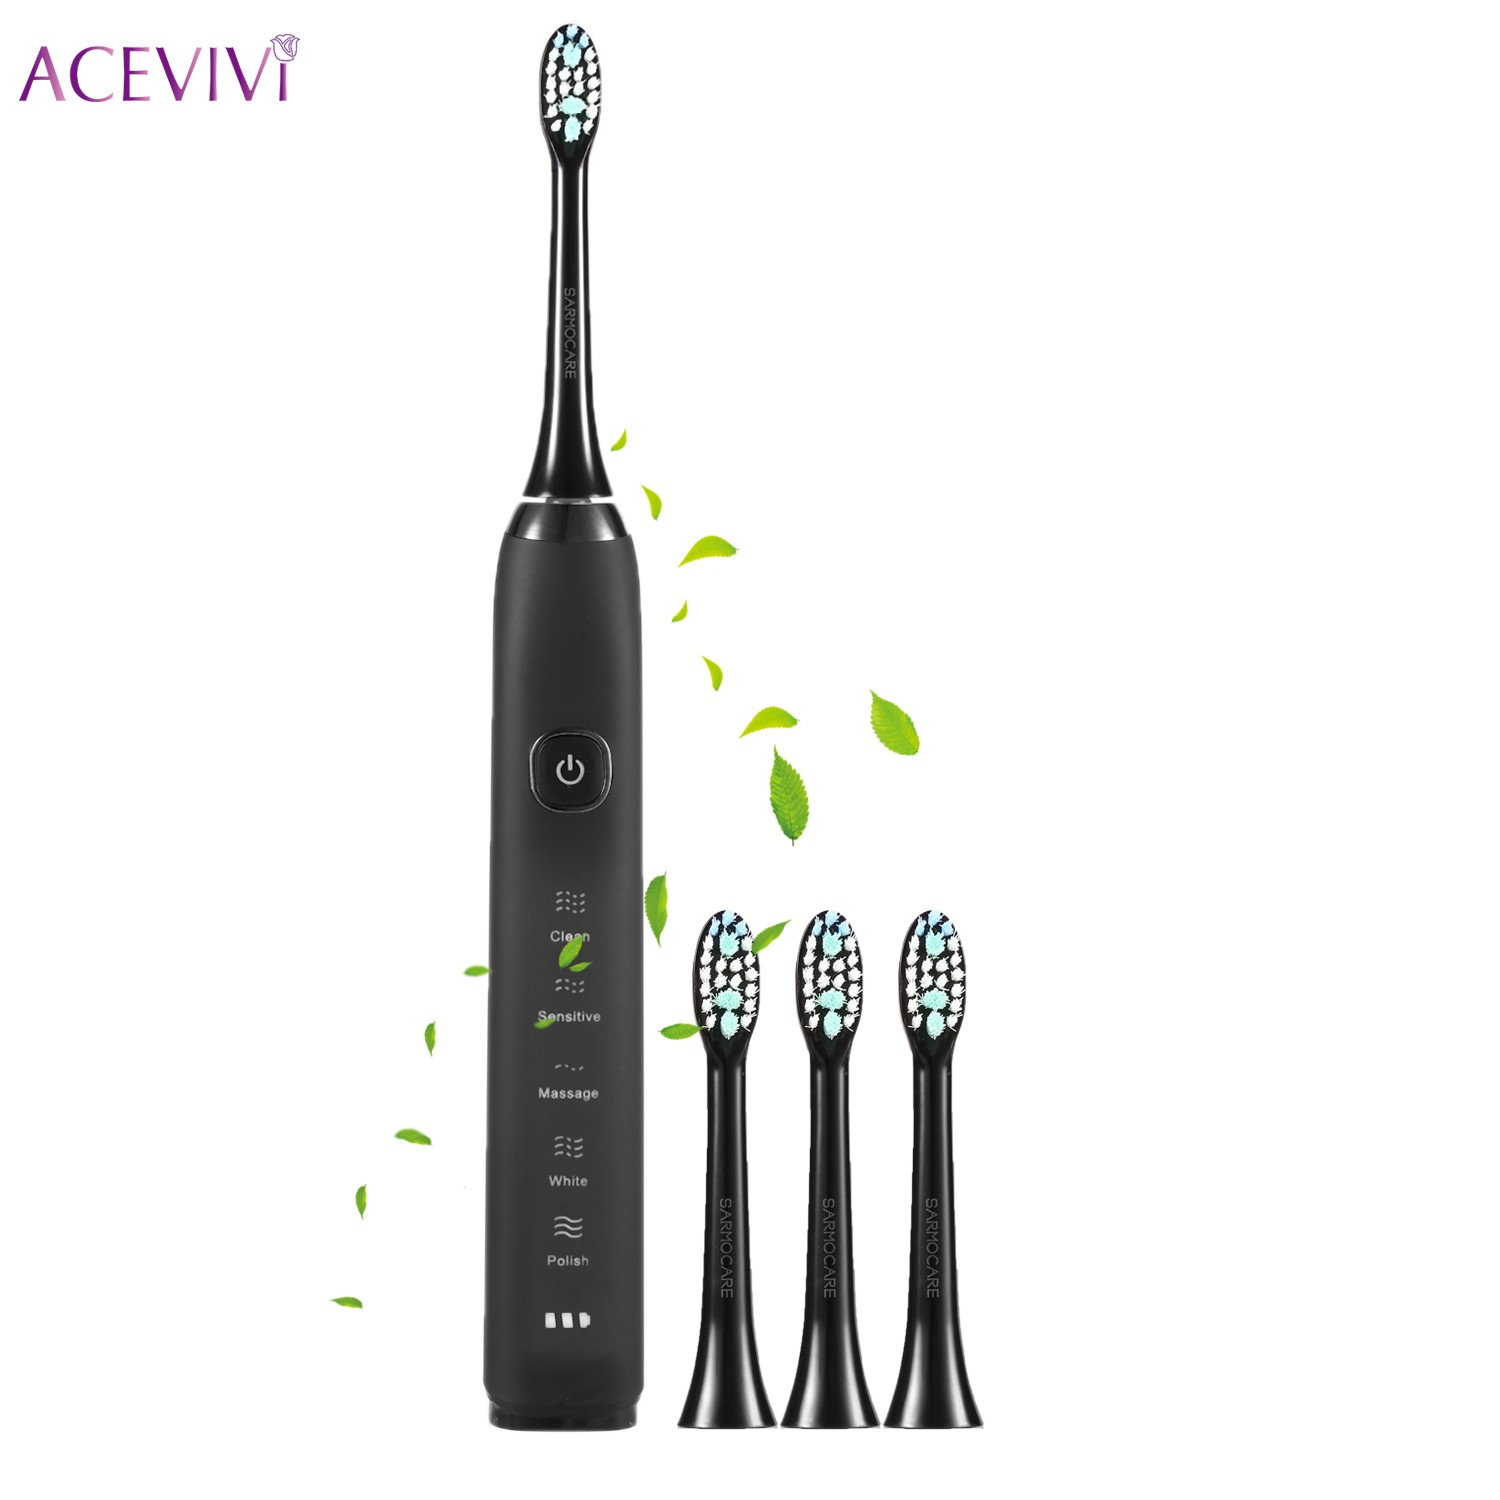 ACEVIVI Ultrasonic Sonic USB Charge Rechargeable Electric Toothbrush With 3 Replacement Heads Timer Brush Beast Qulaity 2pcs philips sonicare replacement e series electric toothbrush head with cap